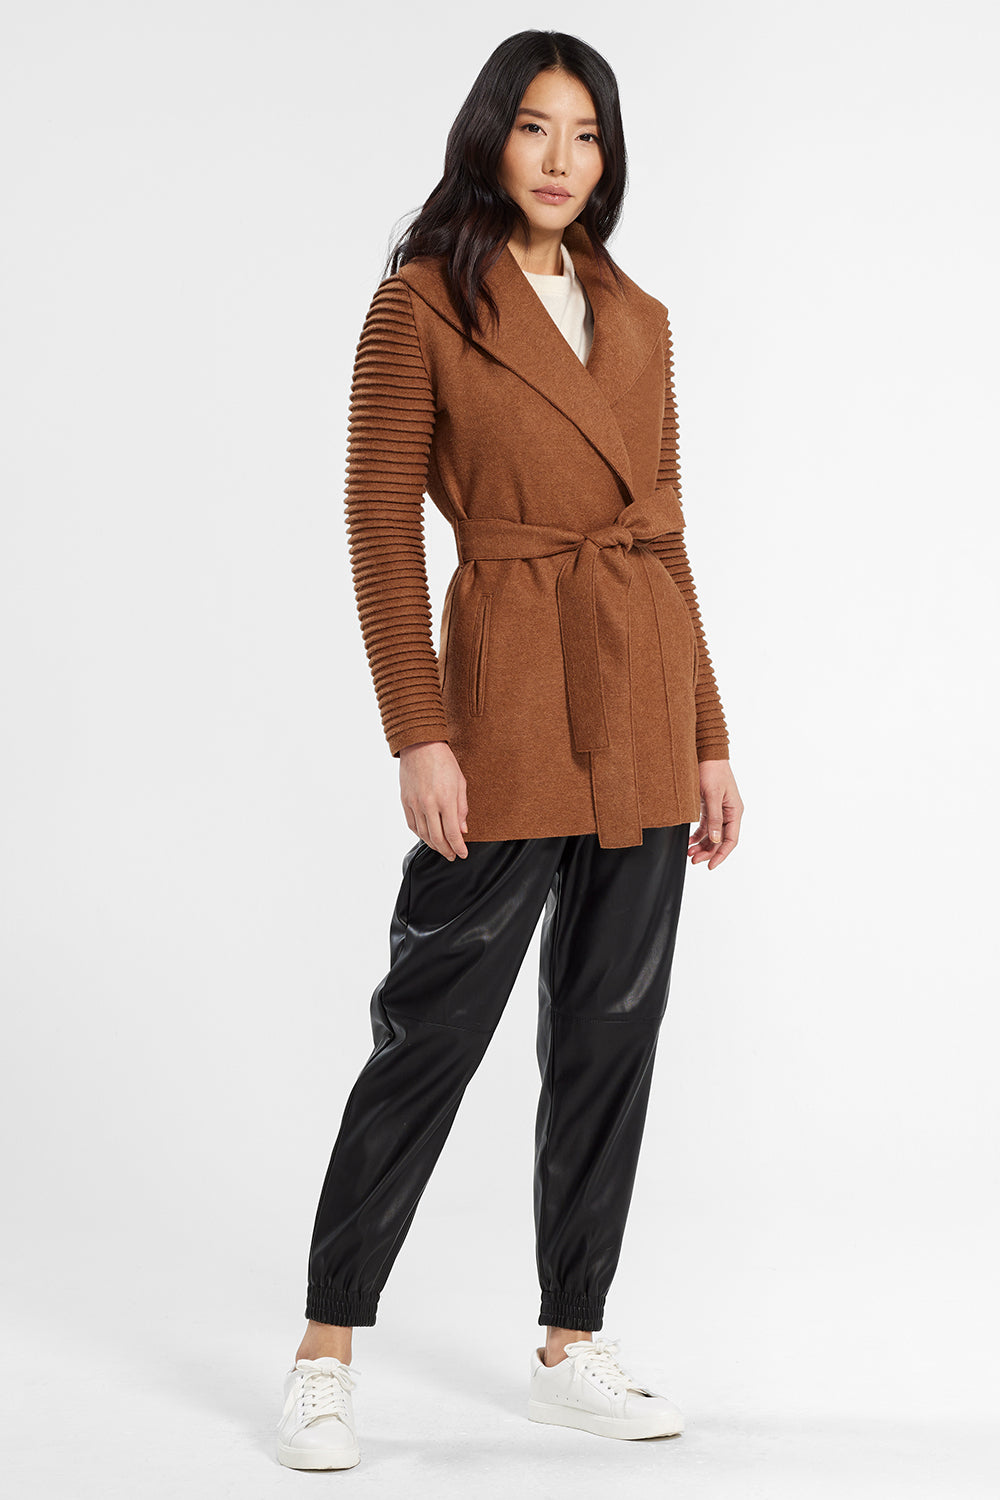 Sentaler Wrap Coat with Ribbed Sleeves featured in Superfine Alpaca and available in Dark Camel. Seen from front.